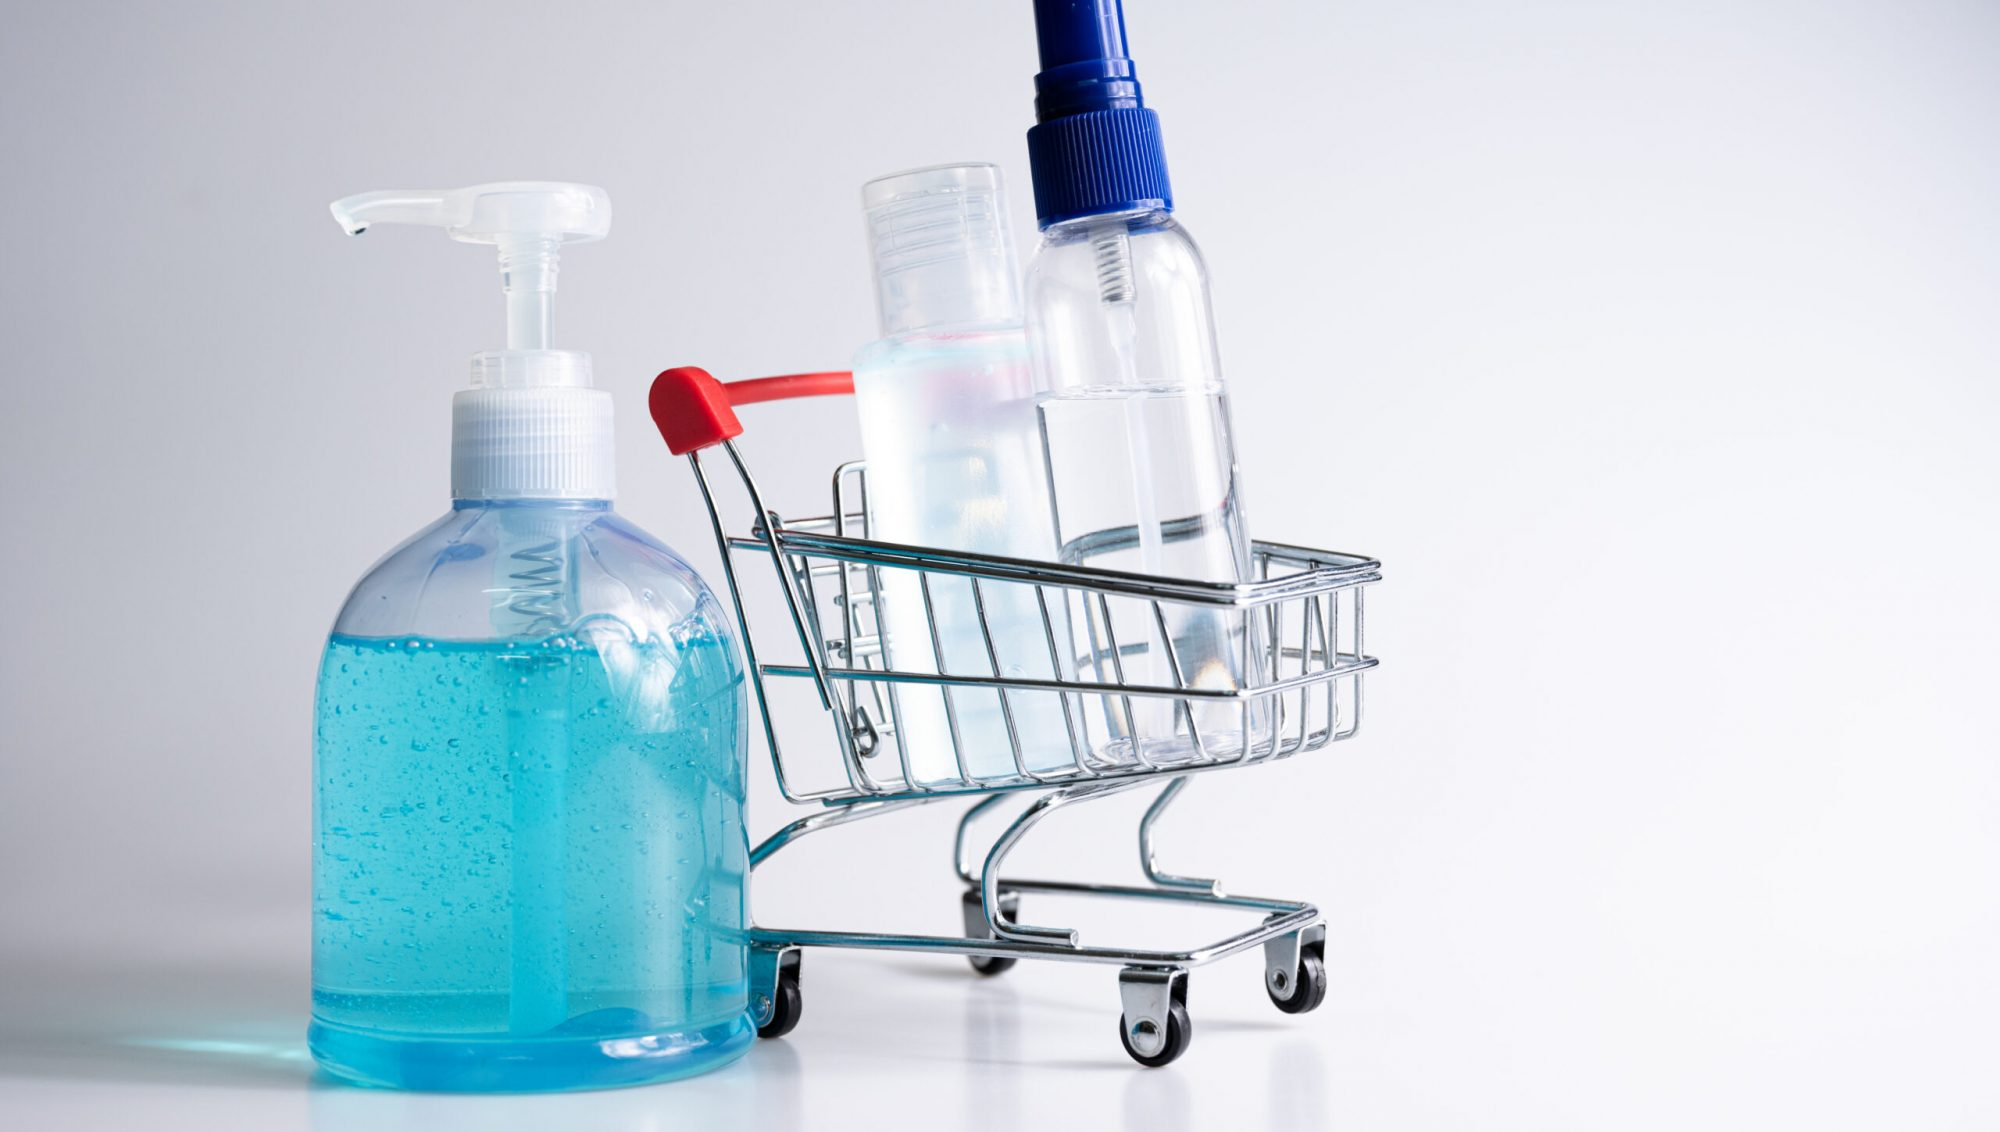 Alcohol spray, hand sanitizer gel for prevention germ and coronavirus vaccine in trolley, cart shopping online